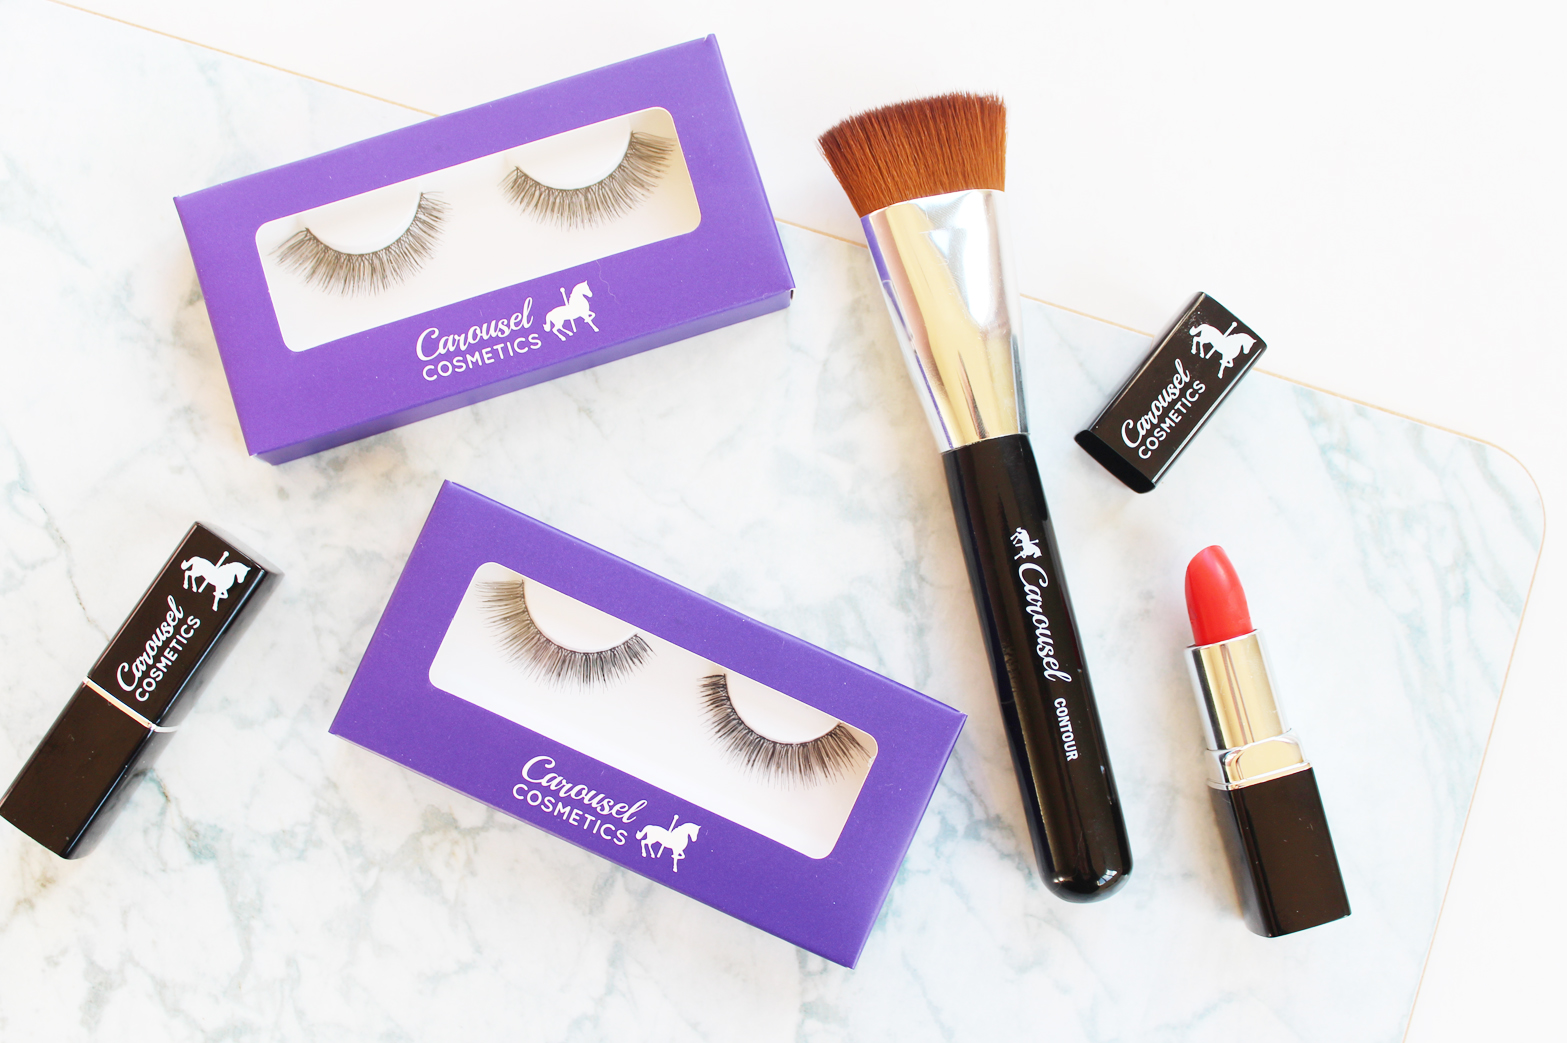 CAROUSEL COSMETICS | Lashes + Contour Brush Review - CassandraMyee